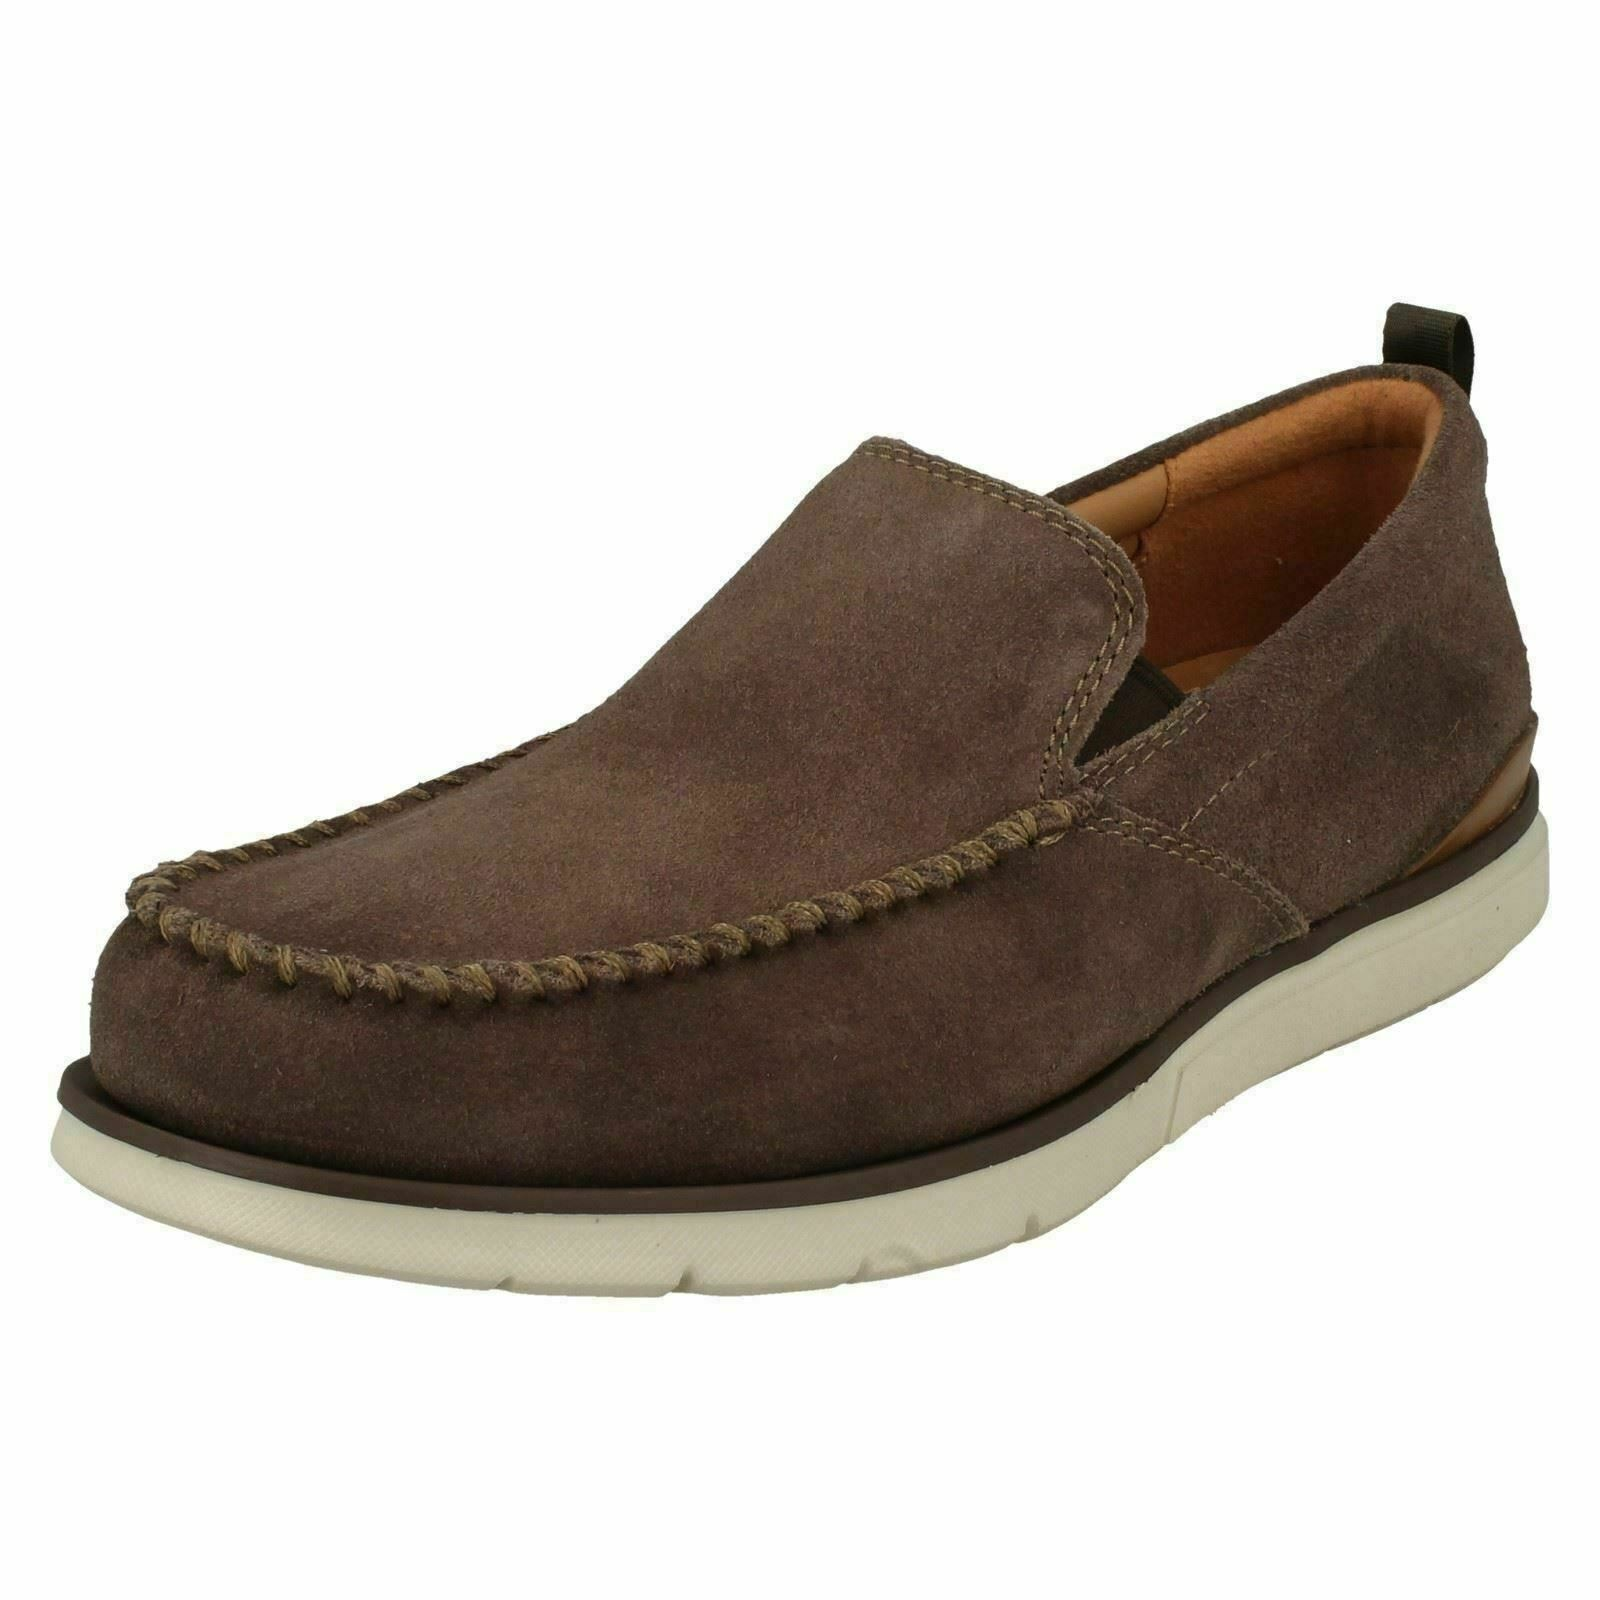 MENS CLARKS TAUPE SUEDE SLIP ON STYLISH CASUAL SOFT SHOES SIZE EDGEWOOD STEP